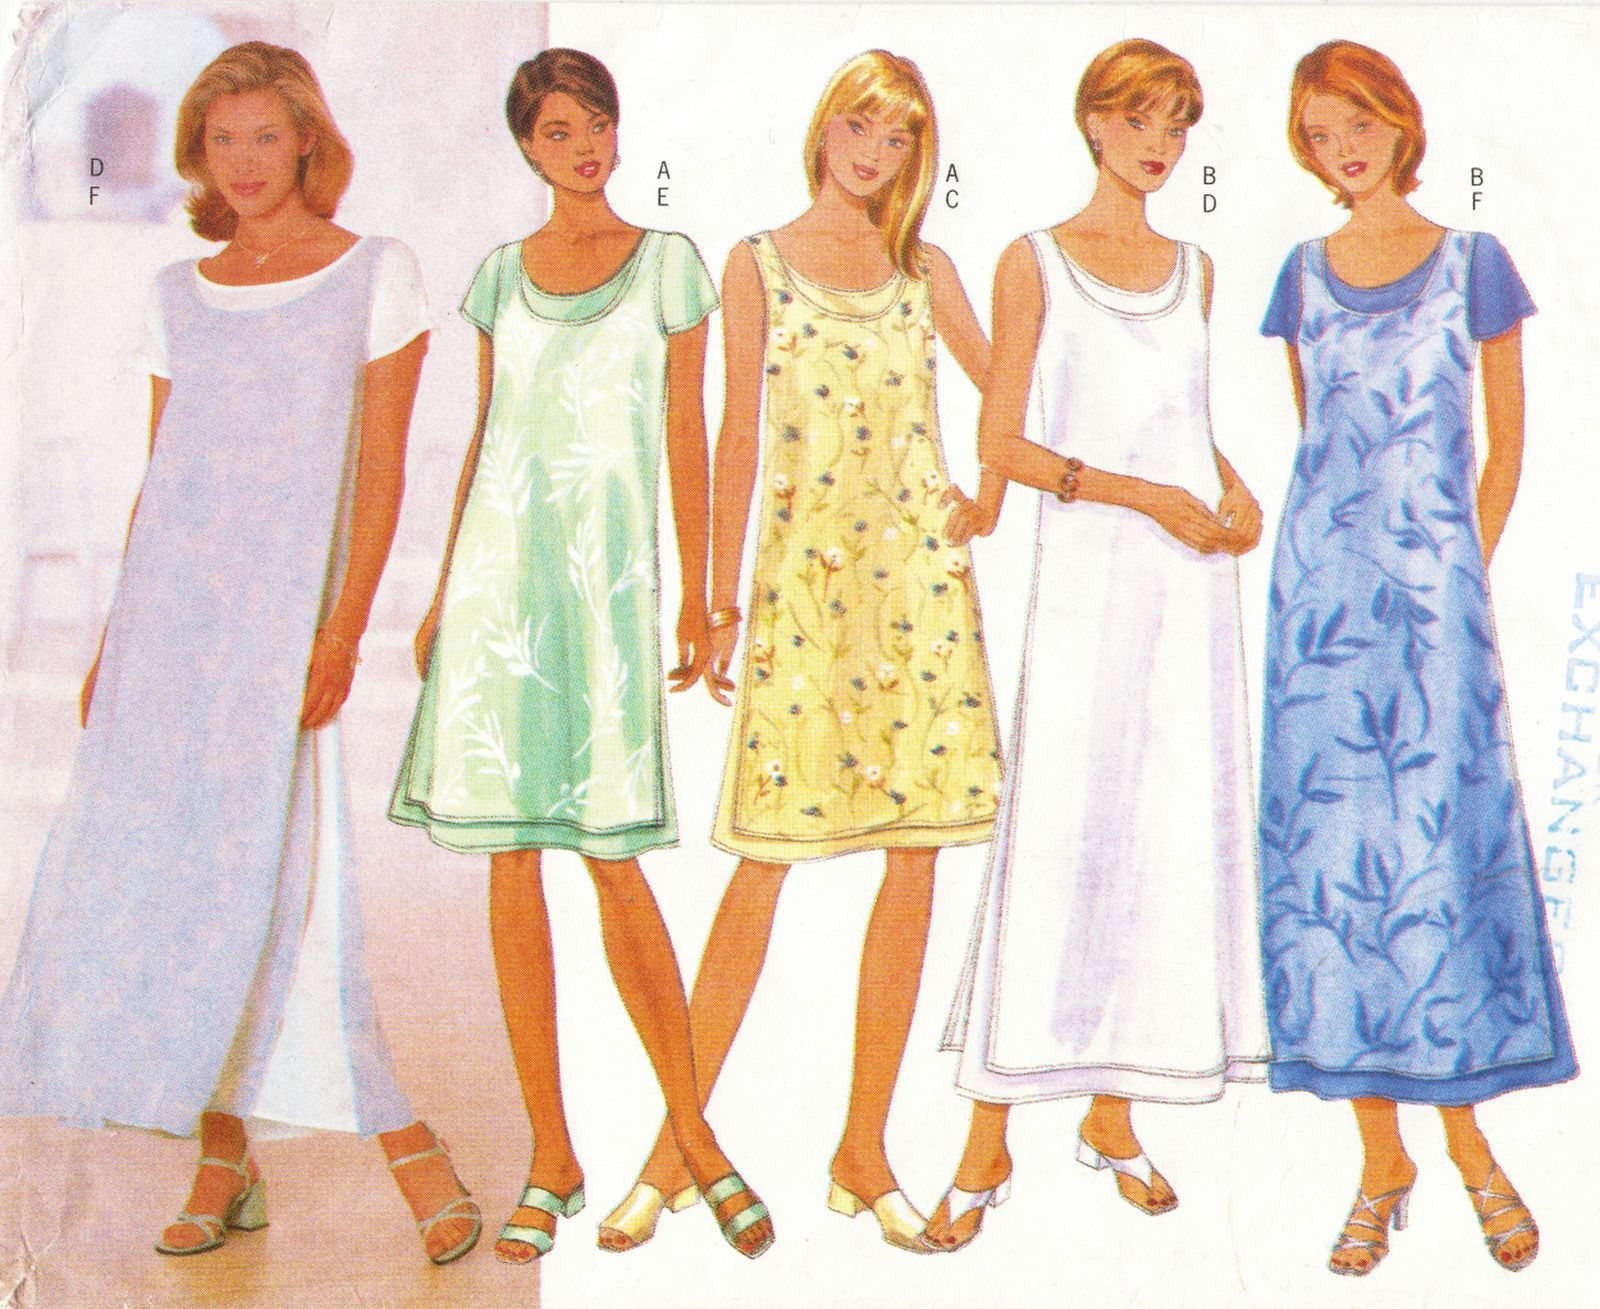 Misses Summer Loose Pullover A-Line Over Dress Slits 3 Lengths Sew Pattern 18-22